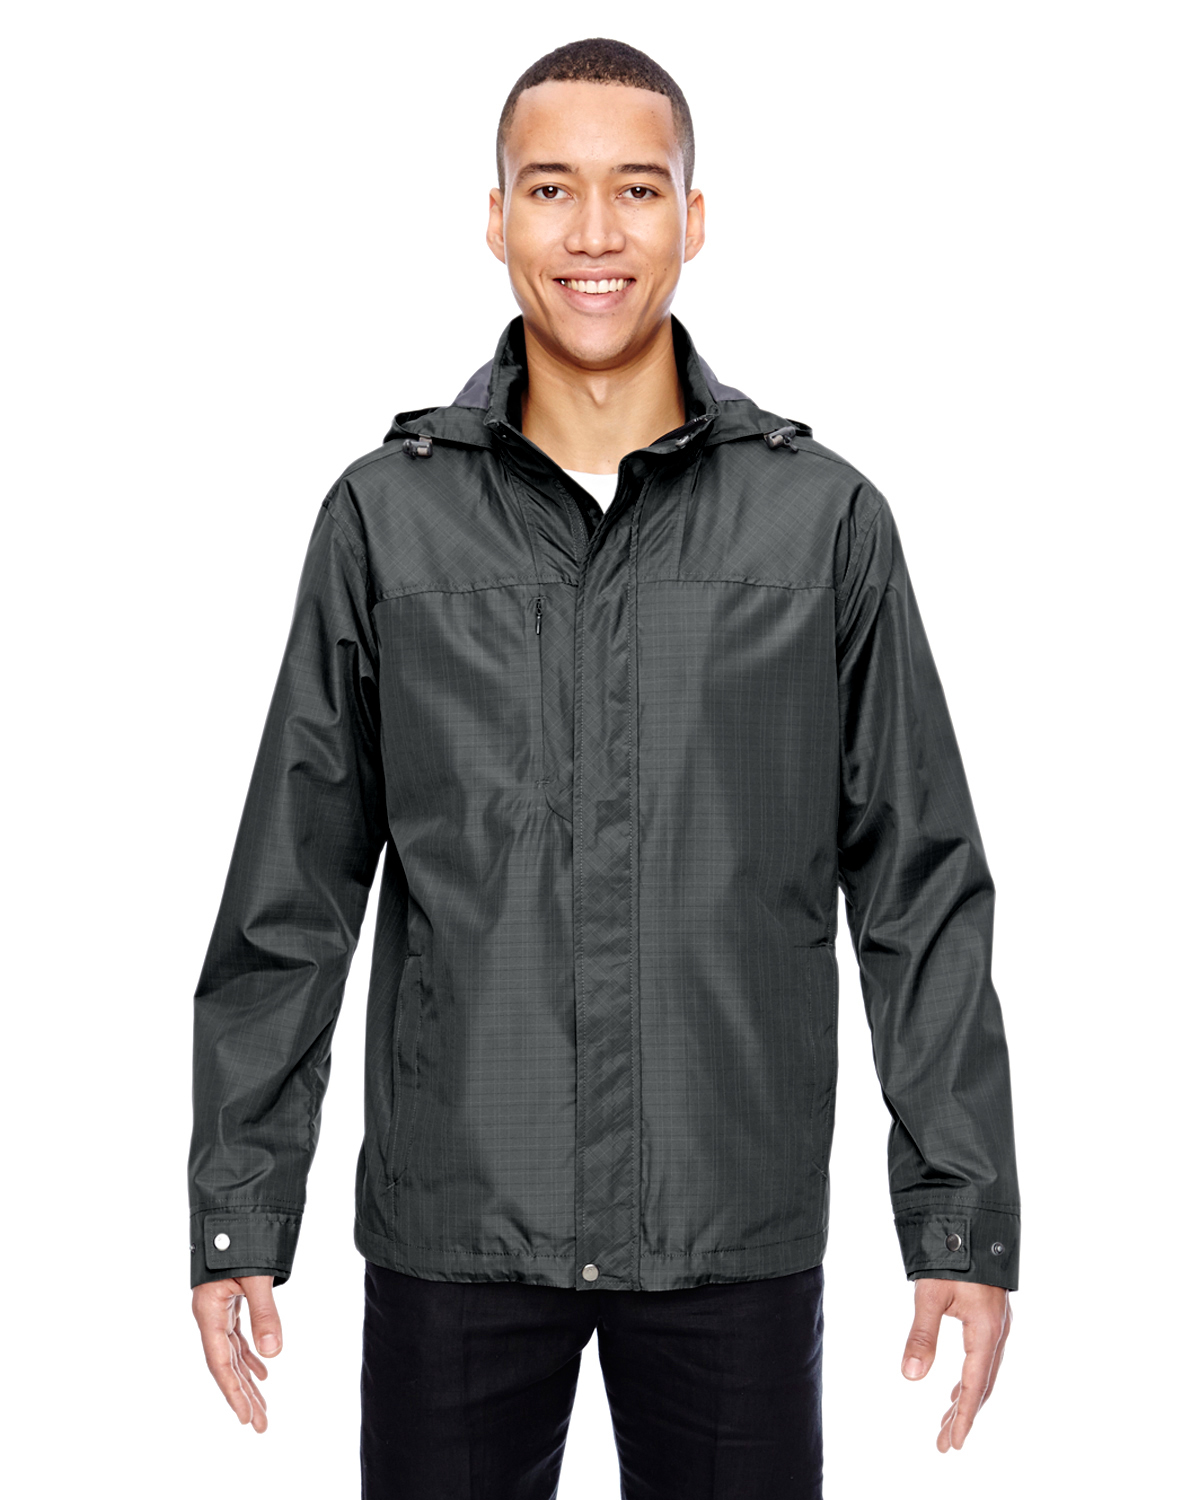 Ash City - North End 88216 - Men's Excursion Transcon Lightweight Jacket with Pattern